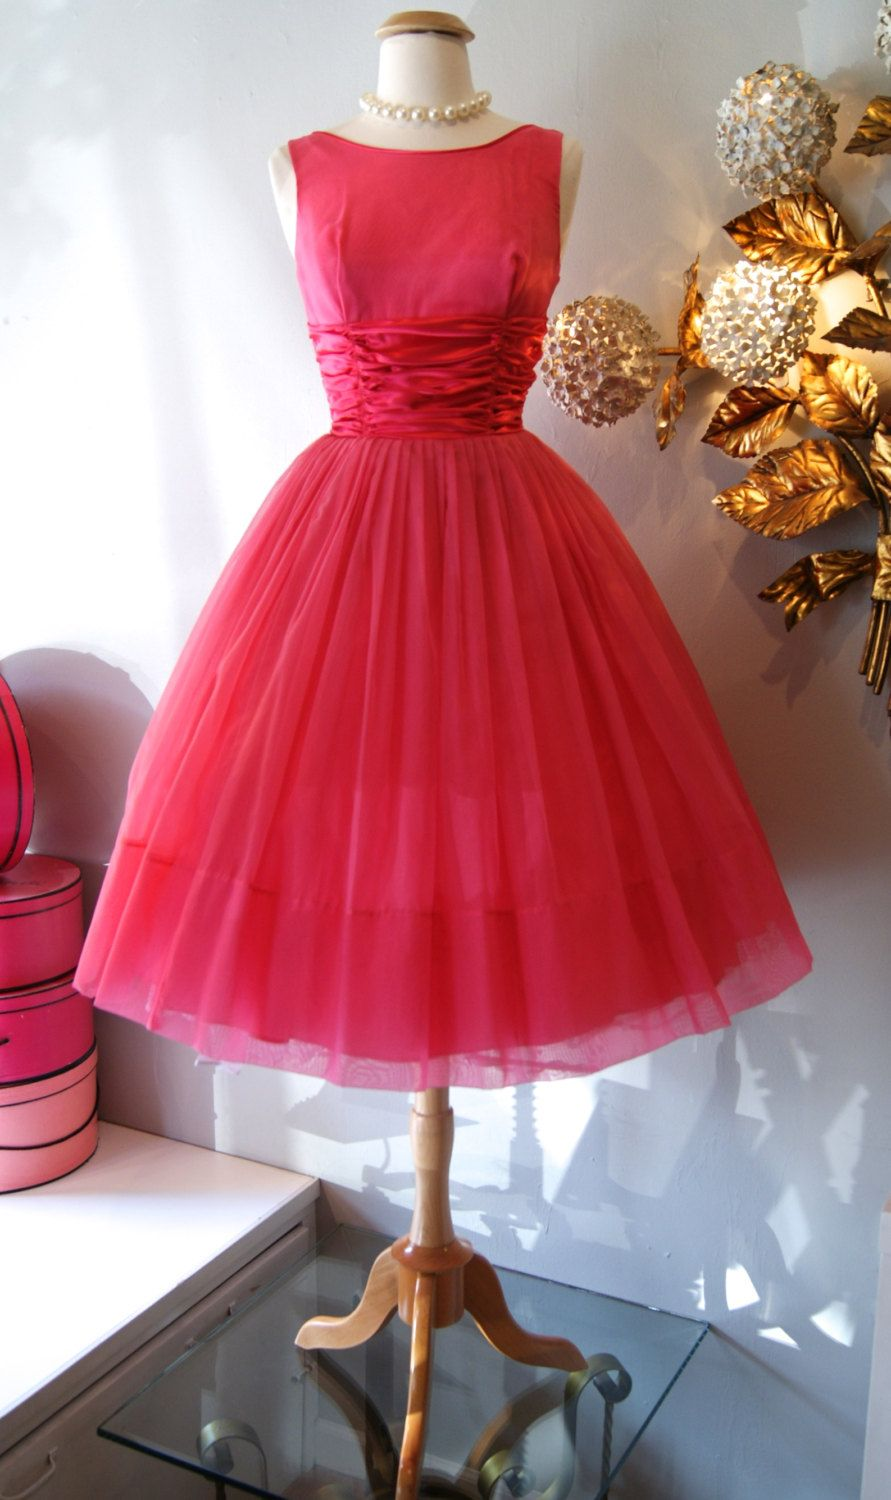 S dress vintage s pretty in pink party dress styles